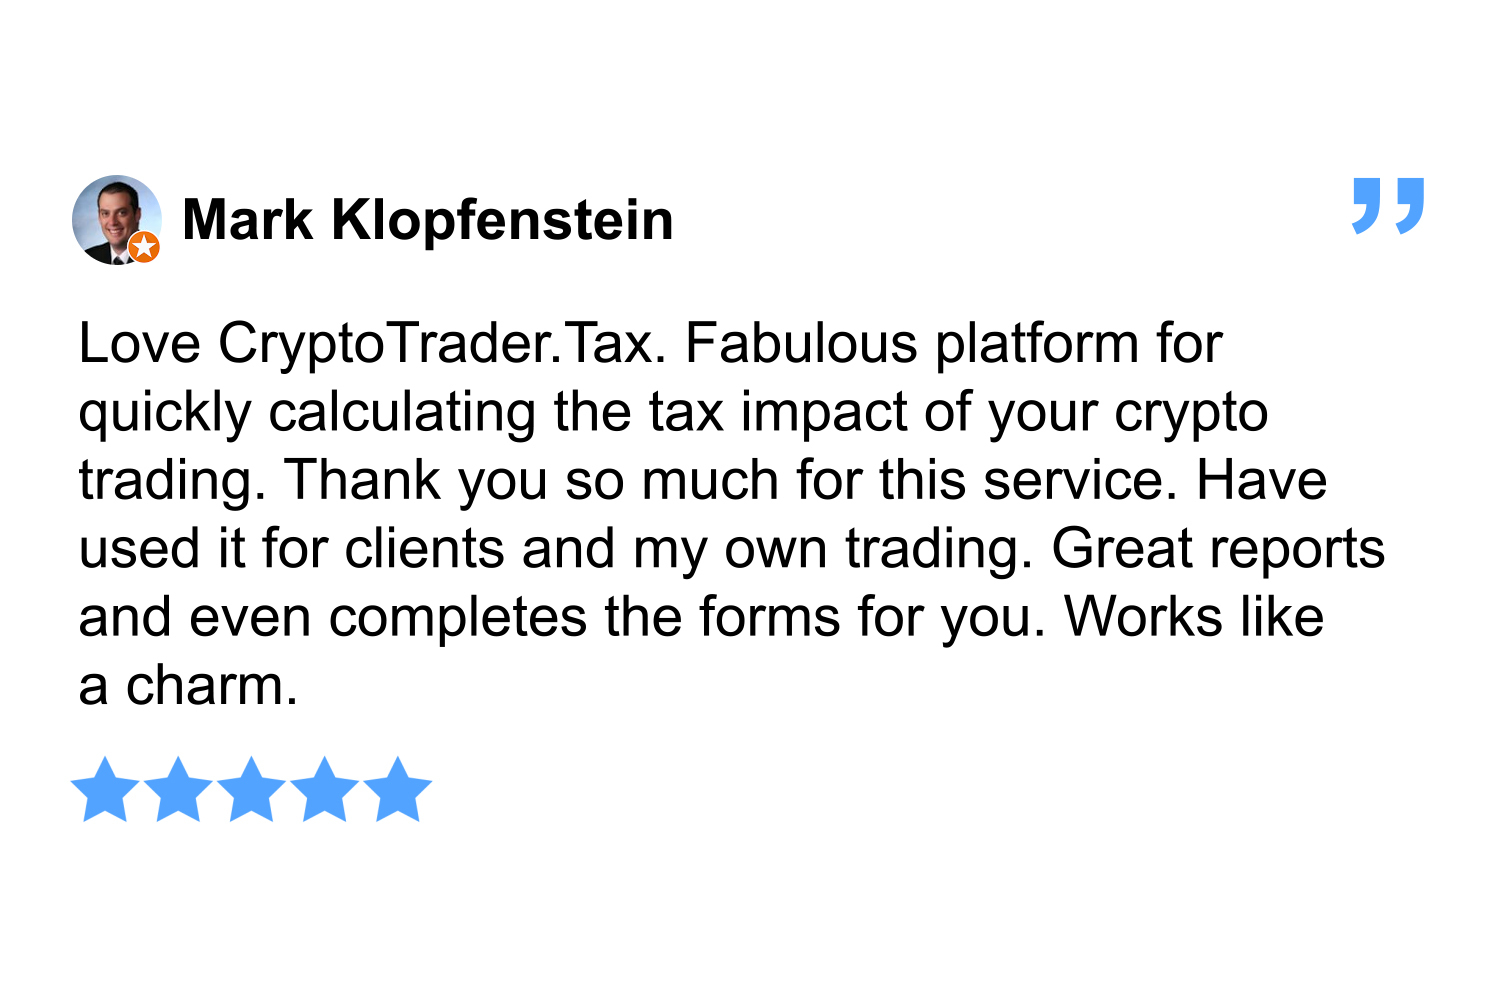 CryptoTrader.Tax Review By Mark